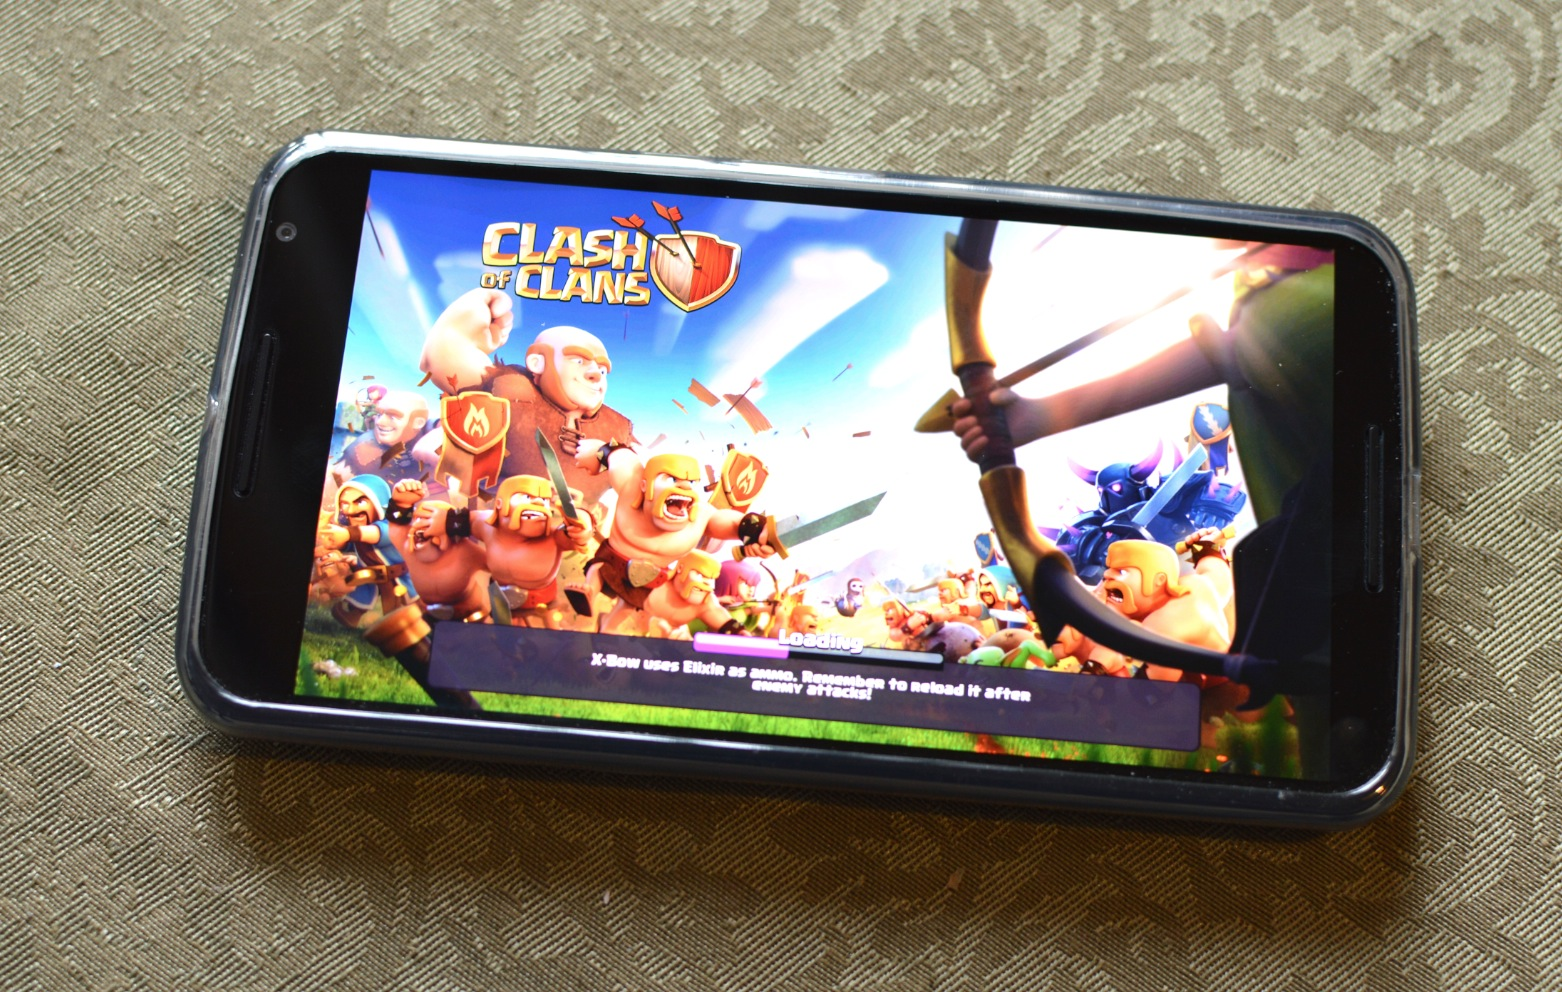 How to Fix Clash of Clans Device Is Not Compatible Problems